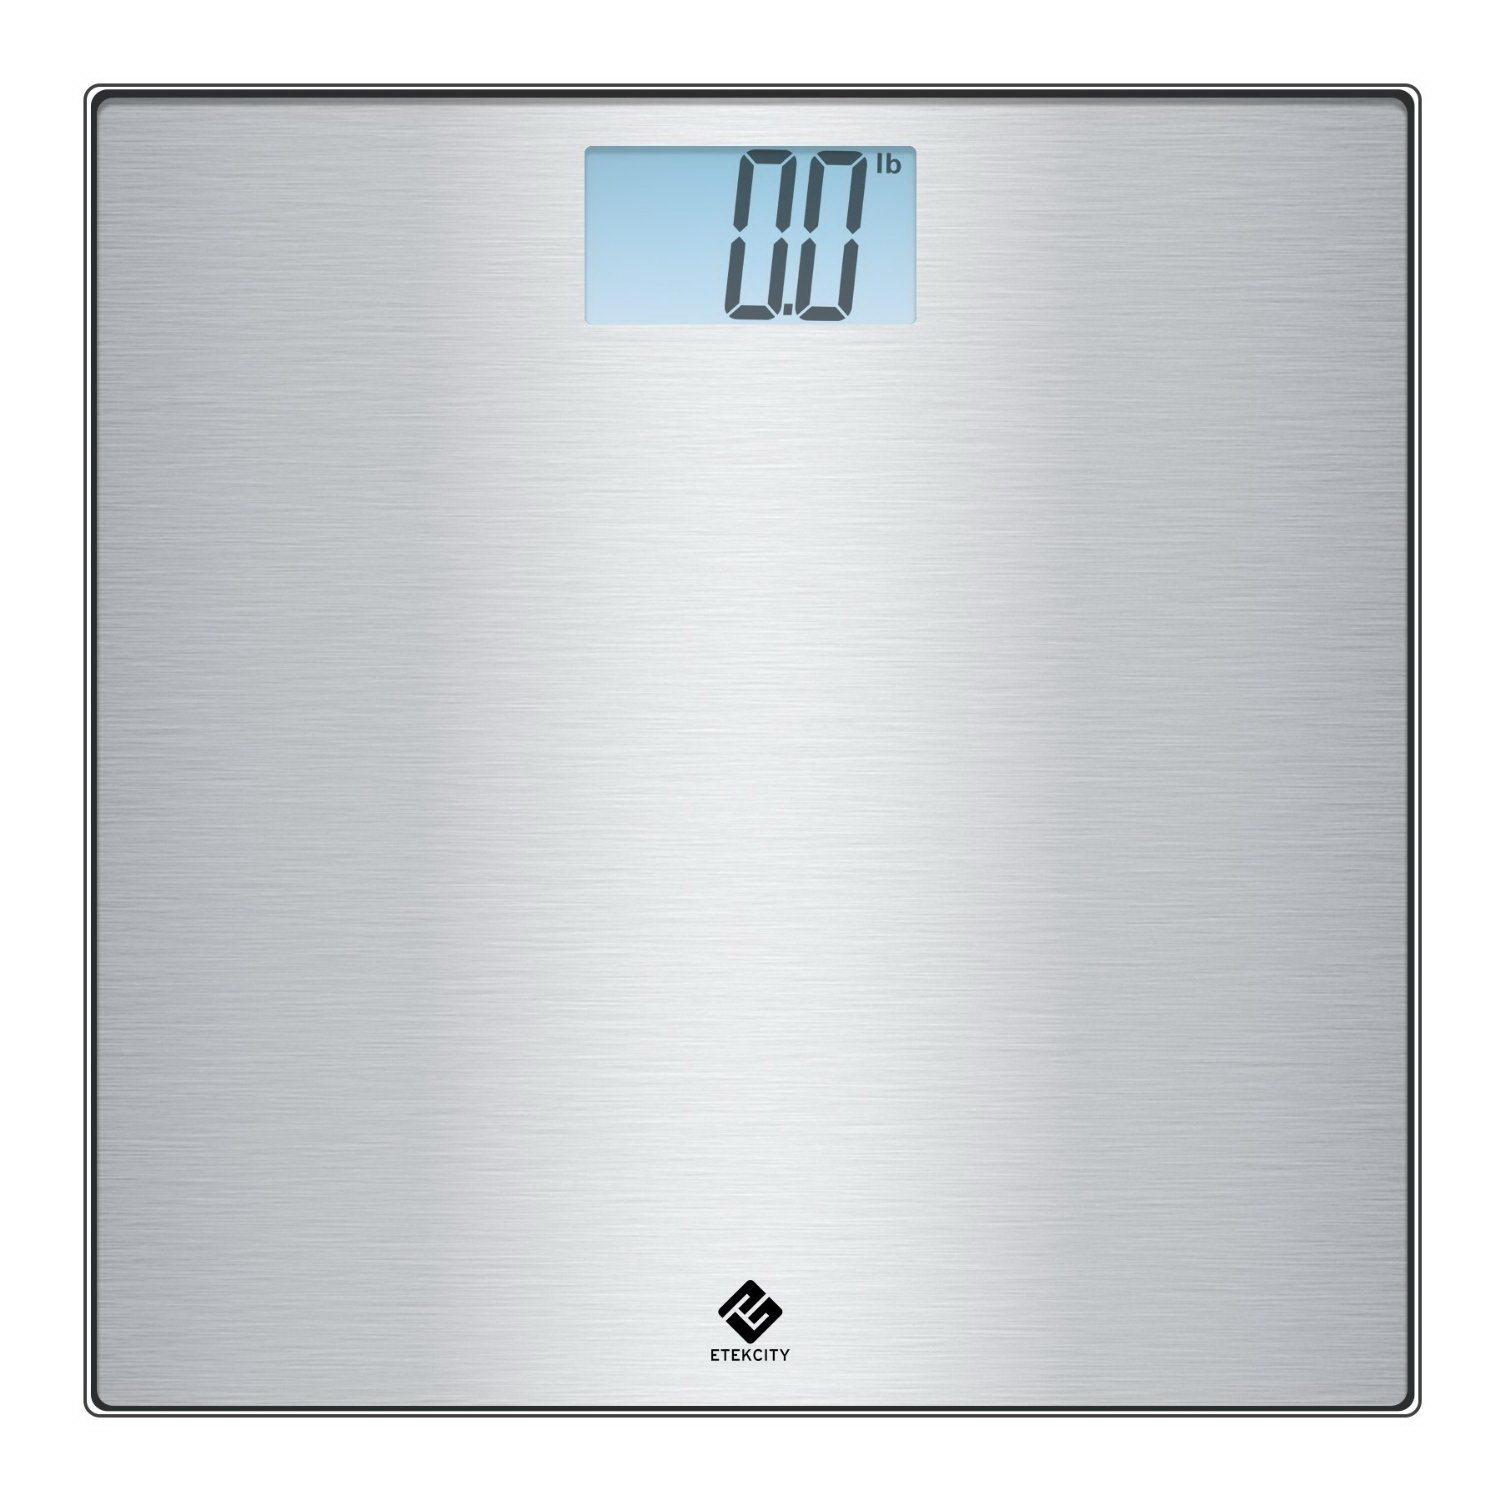 Etekcity Stainless Steel Digital Body Weight Bathroom Scale Step On Technology 400 Pounds